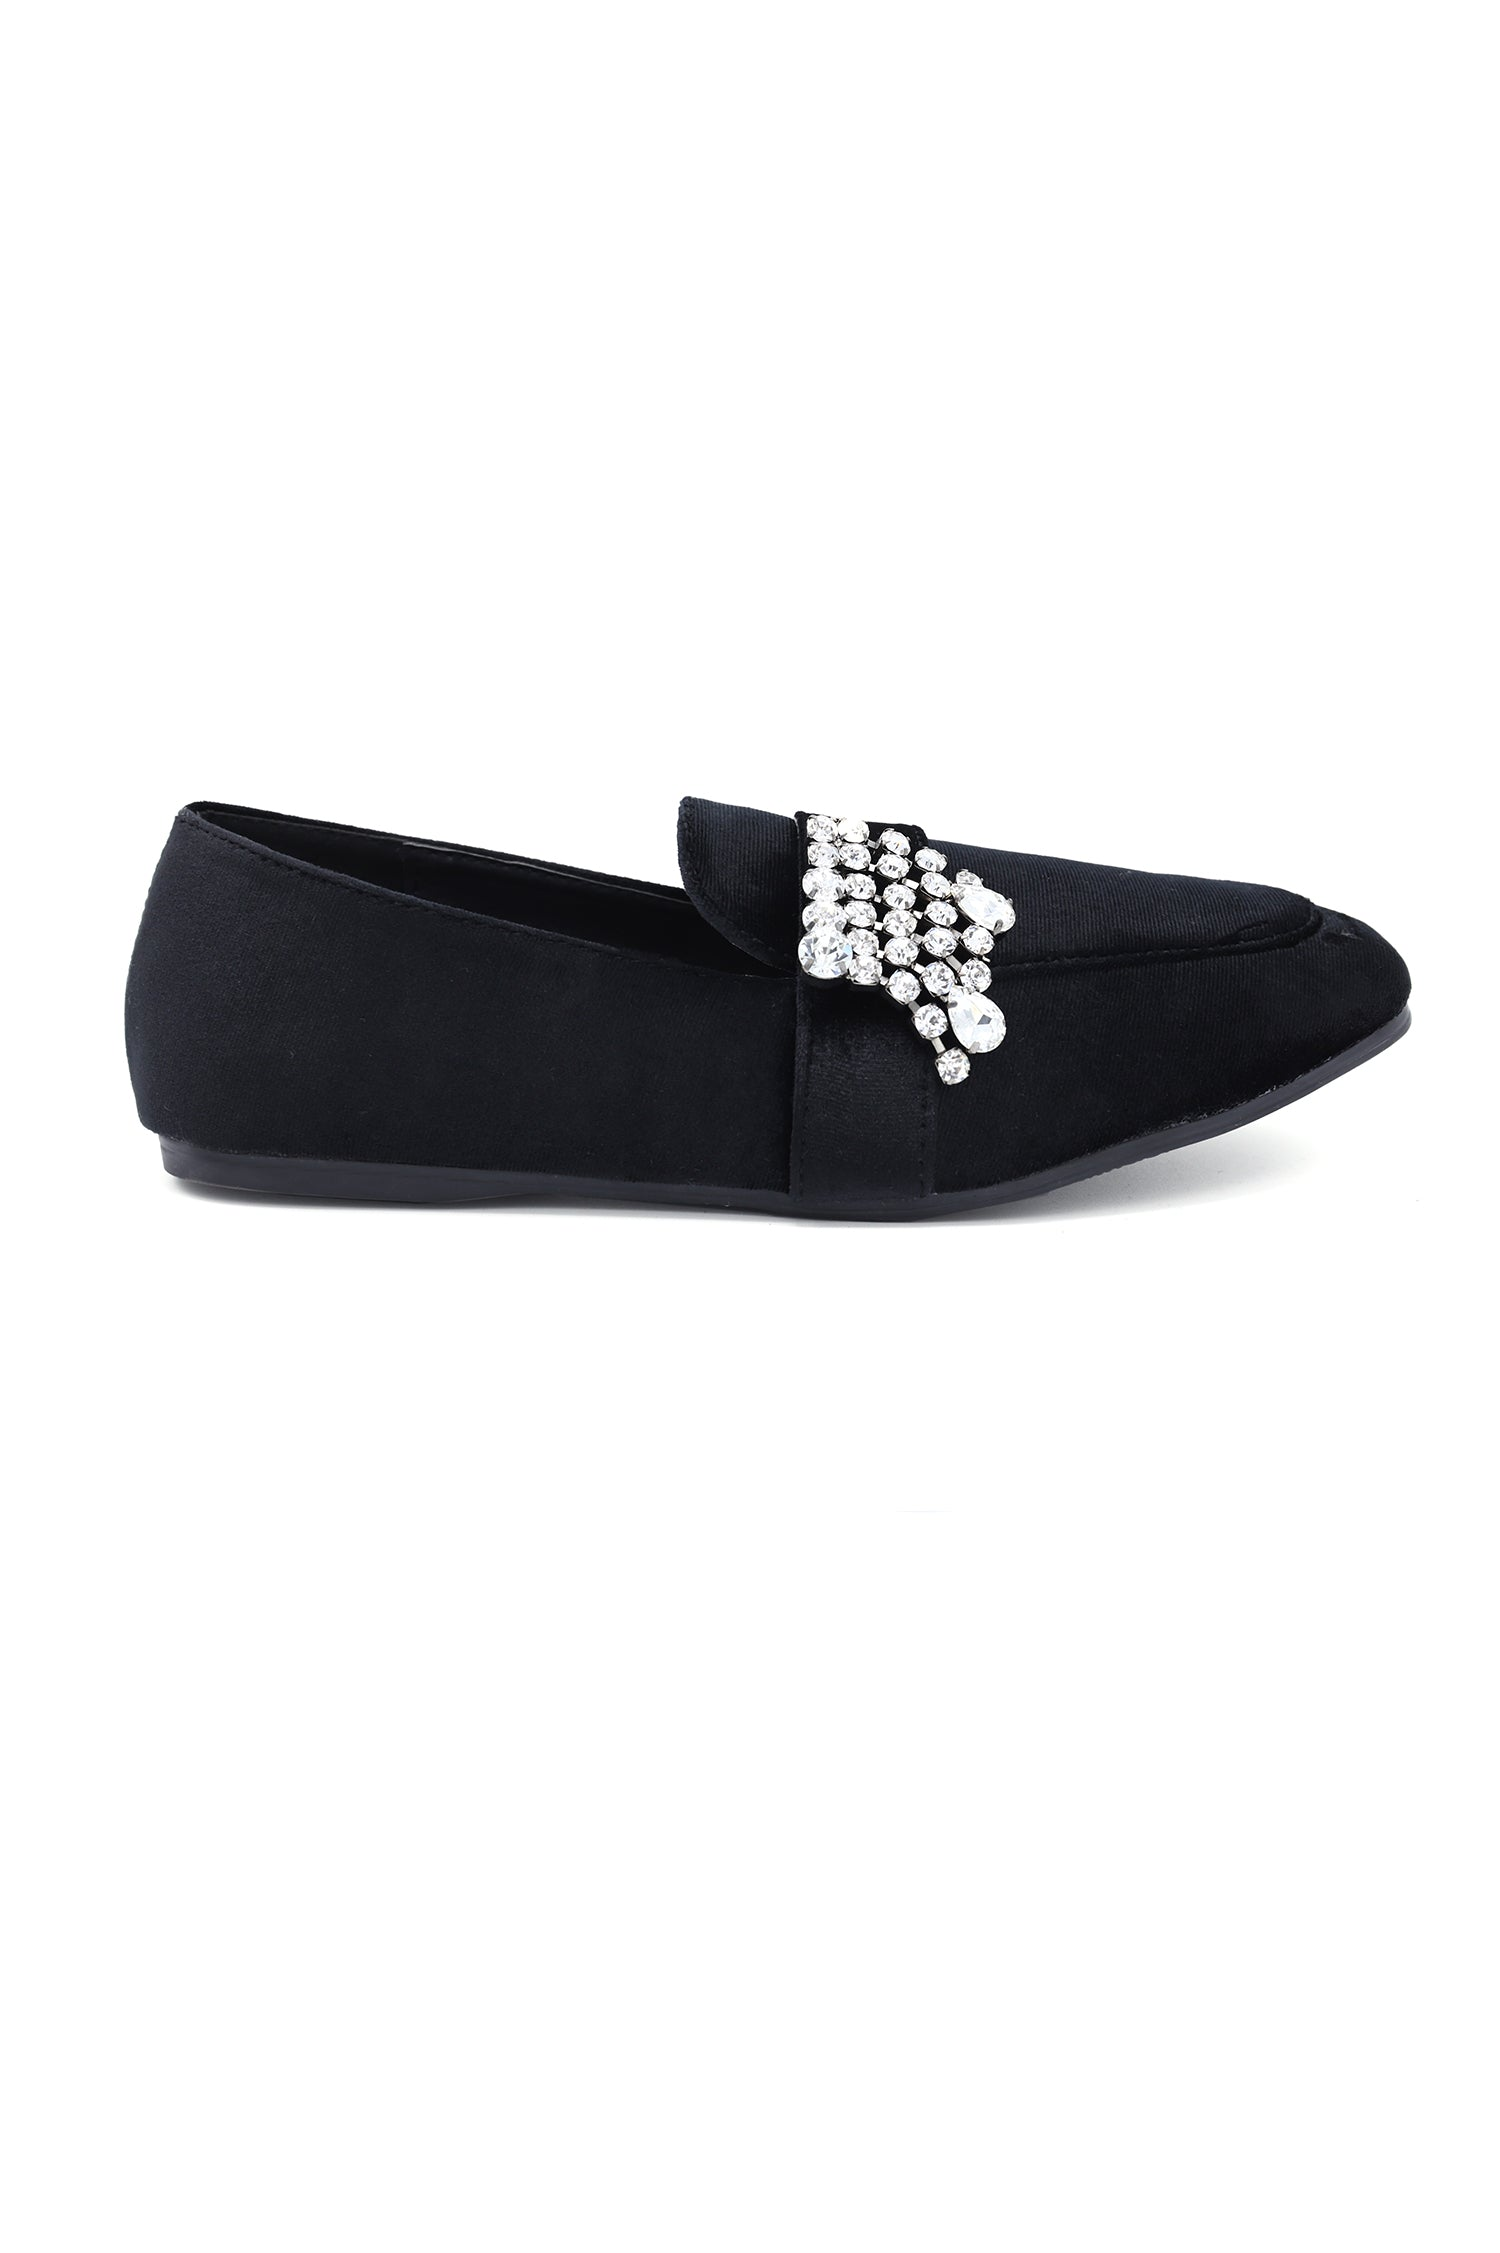 5f2a34c905c DIAMANTE LOAFERS-BLACK – Almas